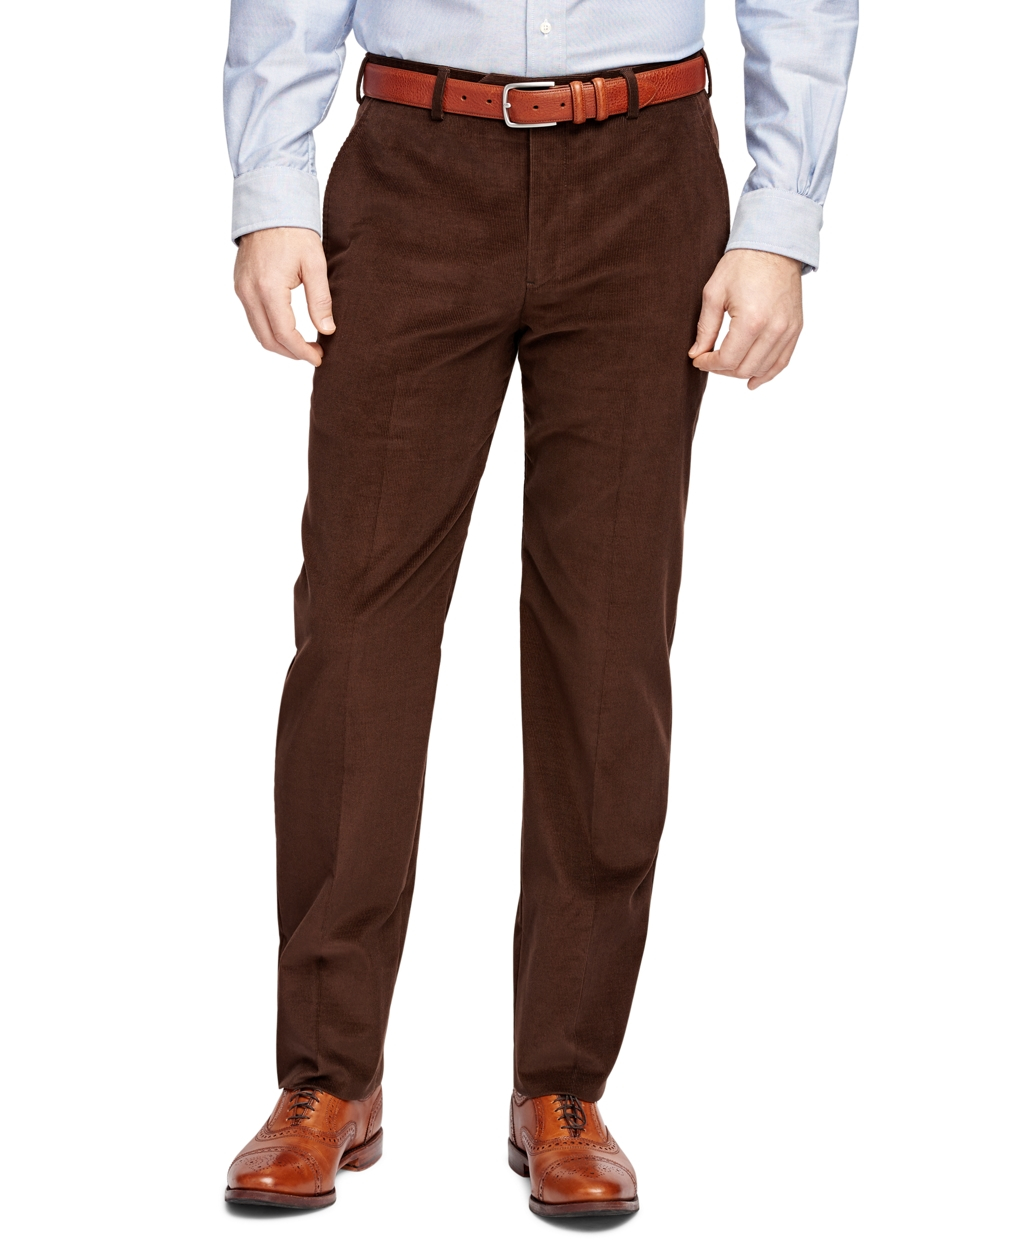 Brooks brothers brown fitzgerald fit corduroy trousers for Brooks brothers dress shirt fit guide